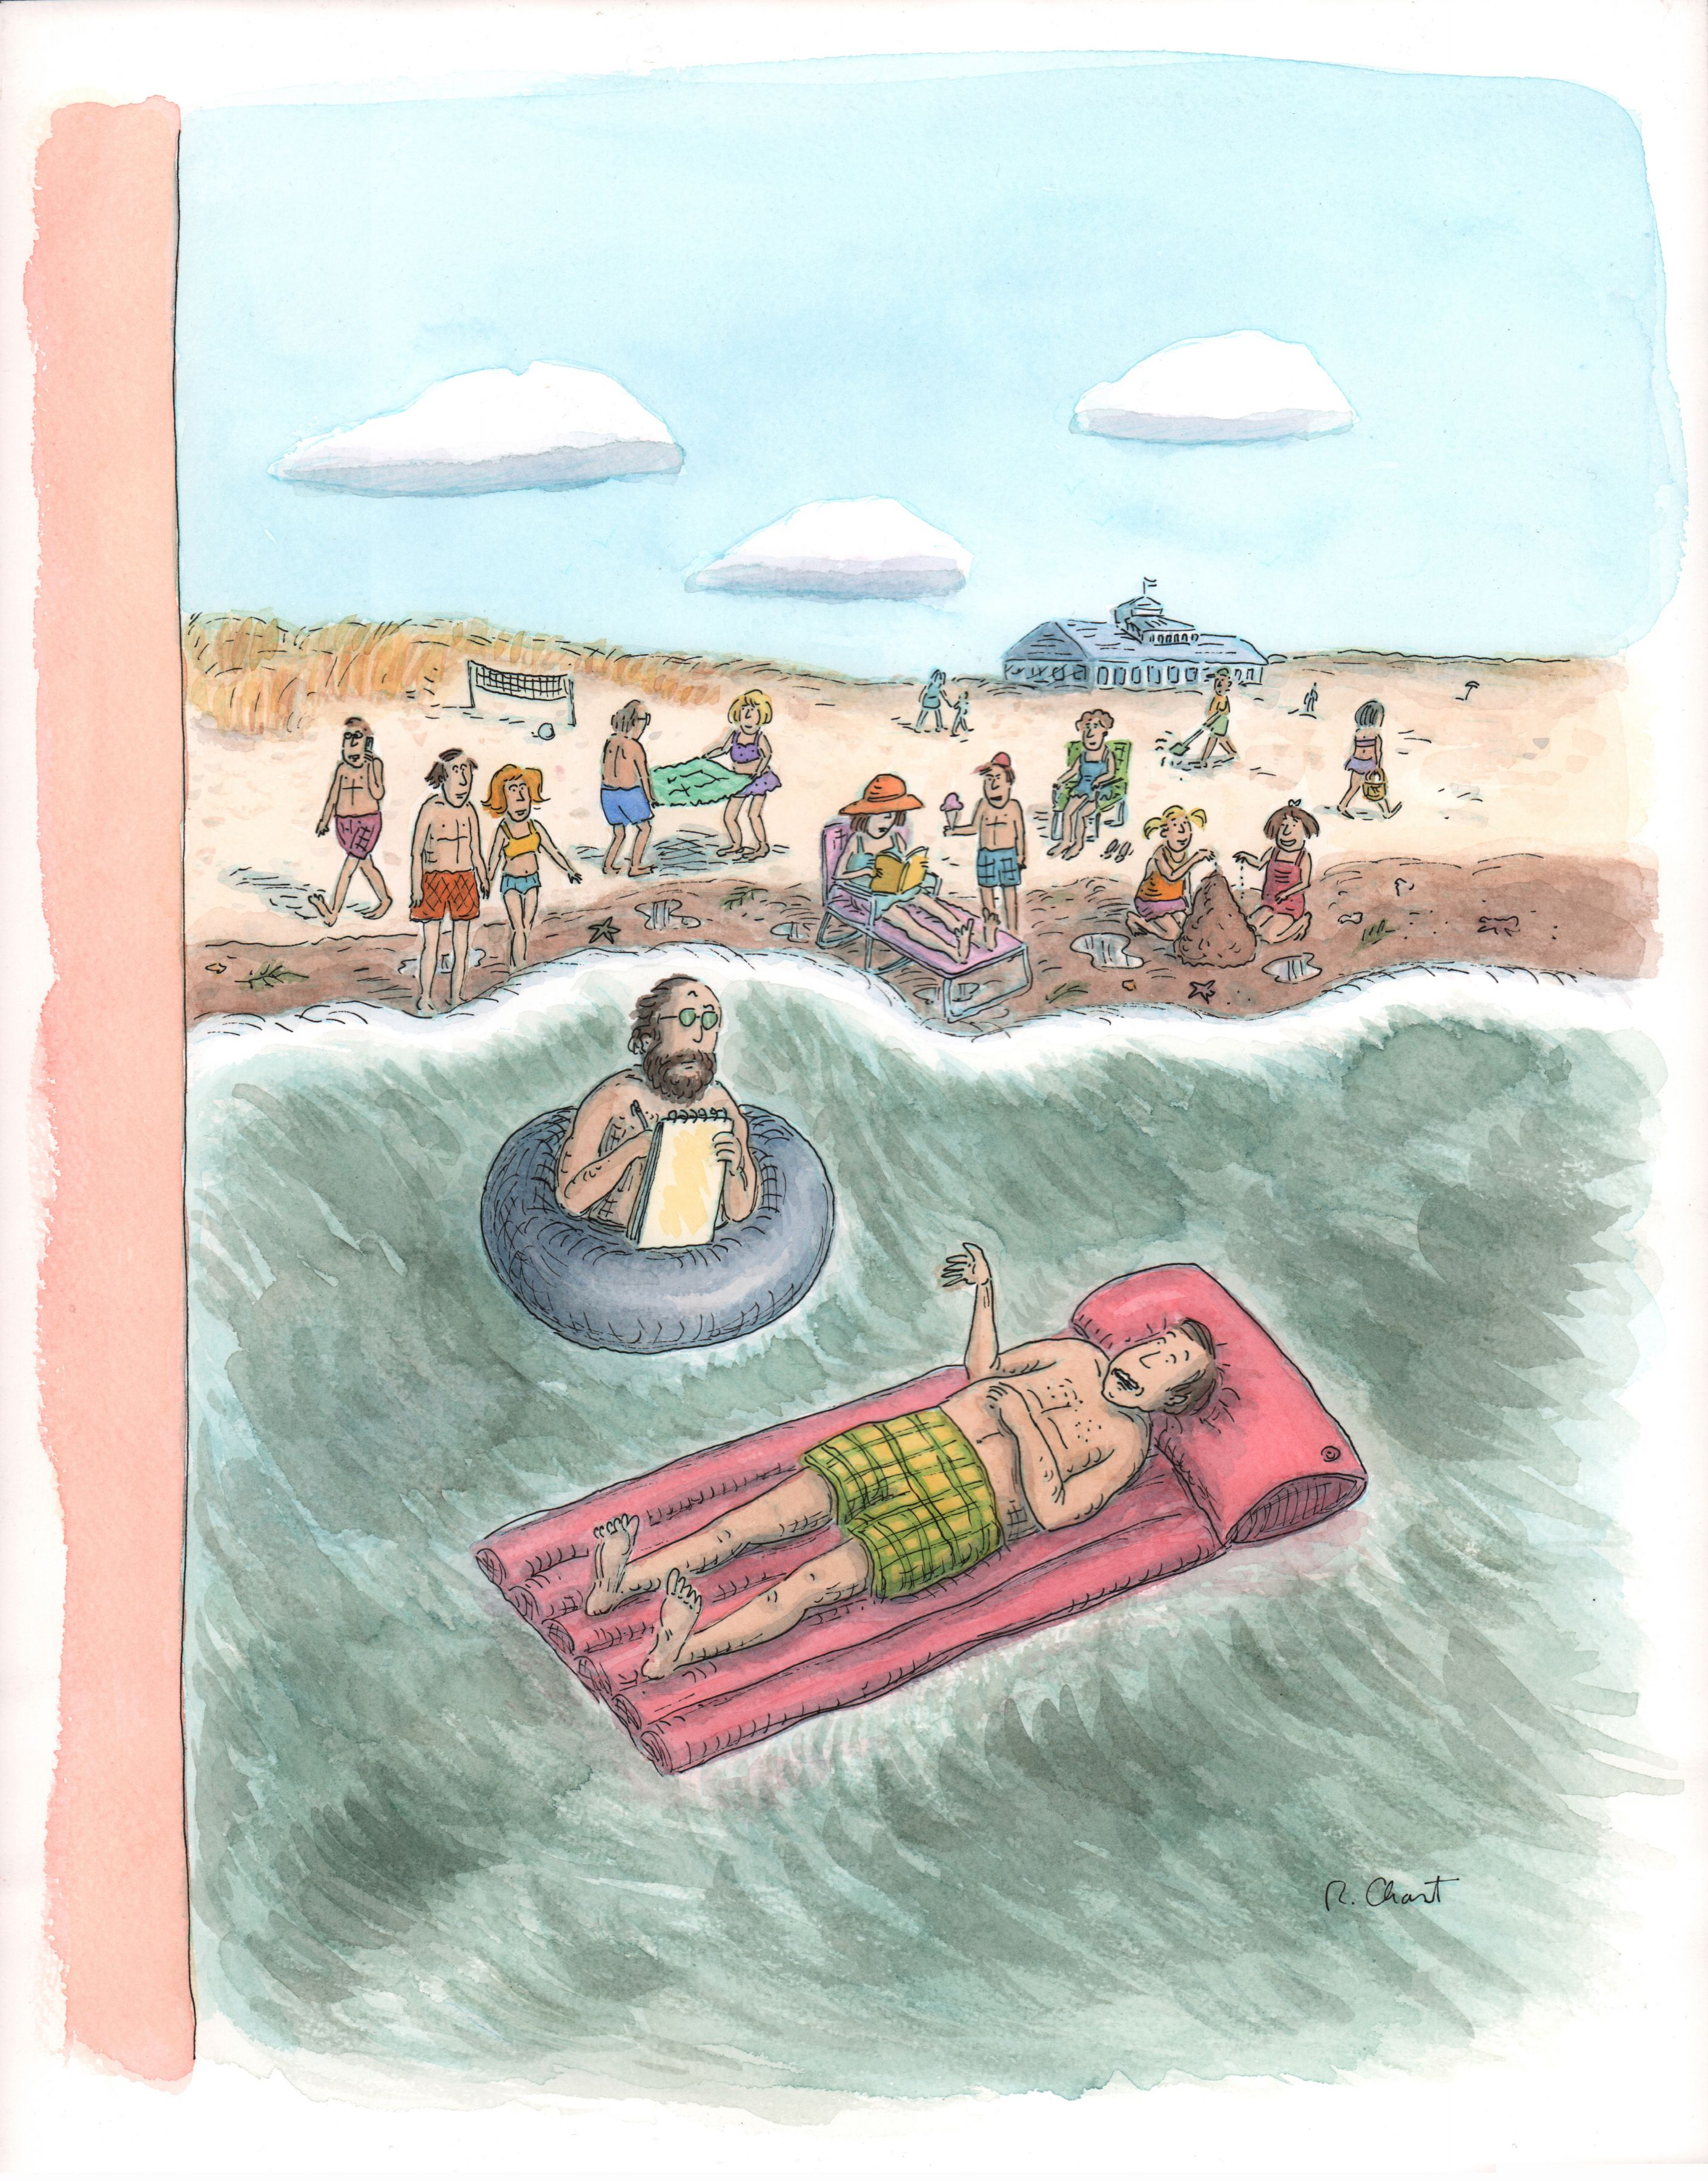 Roz Chast, Psychiatrist Cover, published Aug. 7, 2006